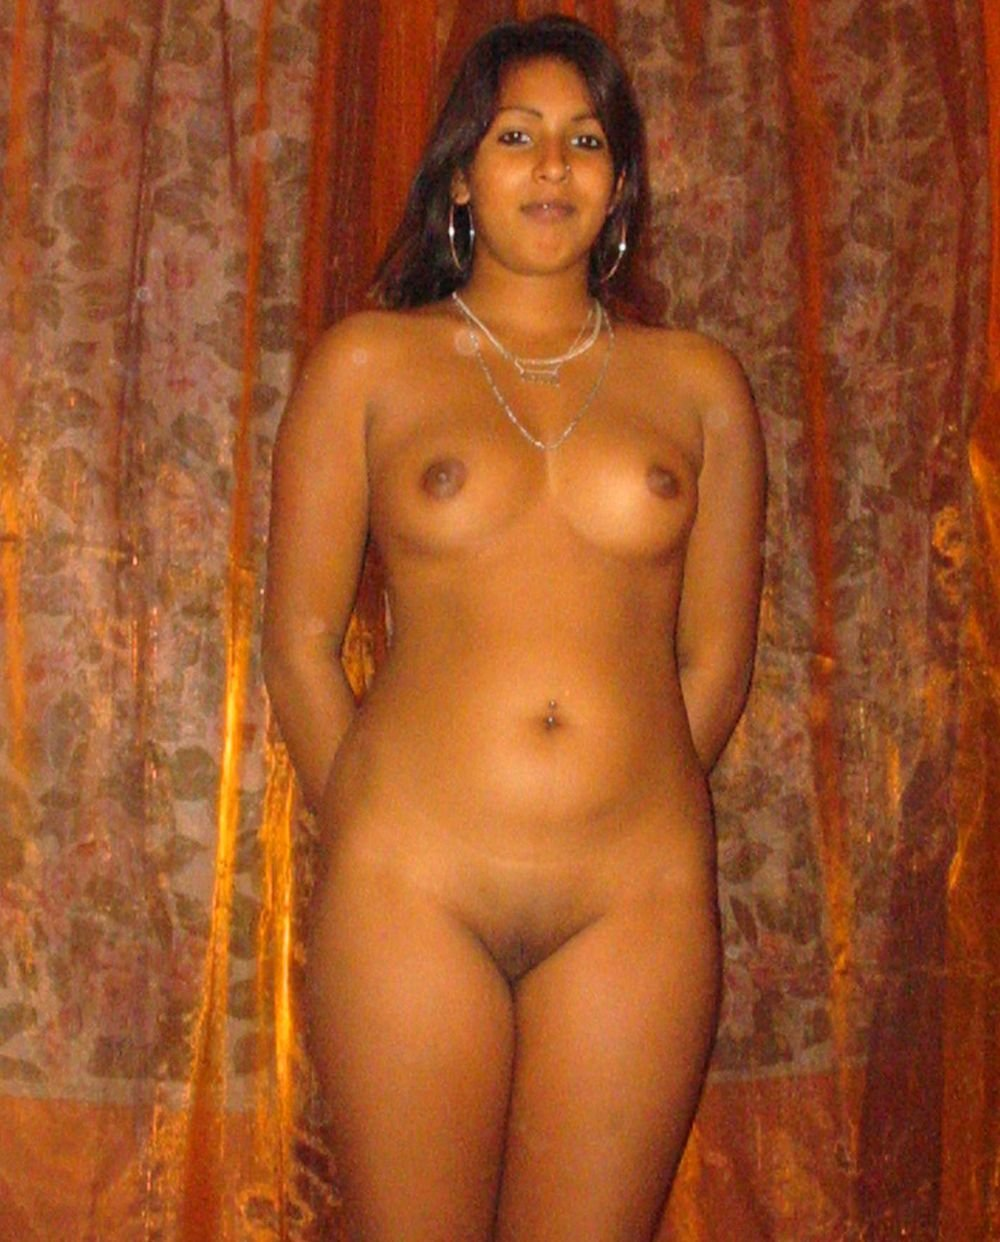 Nude boobs and pussy of karnataka girls